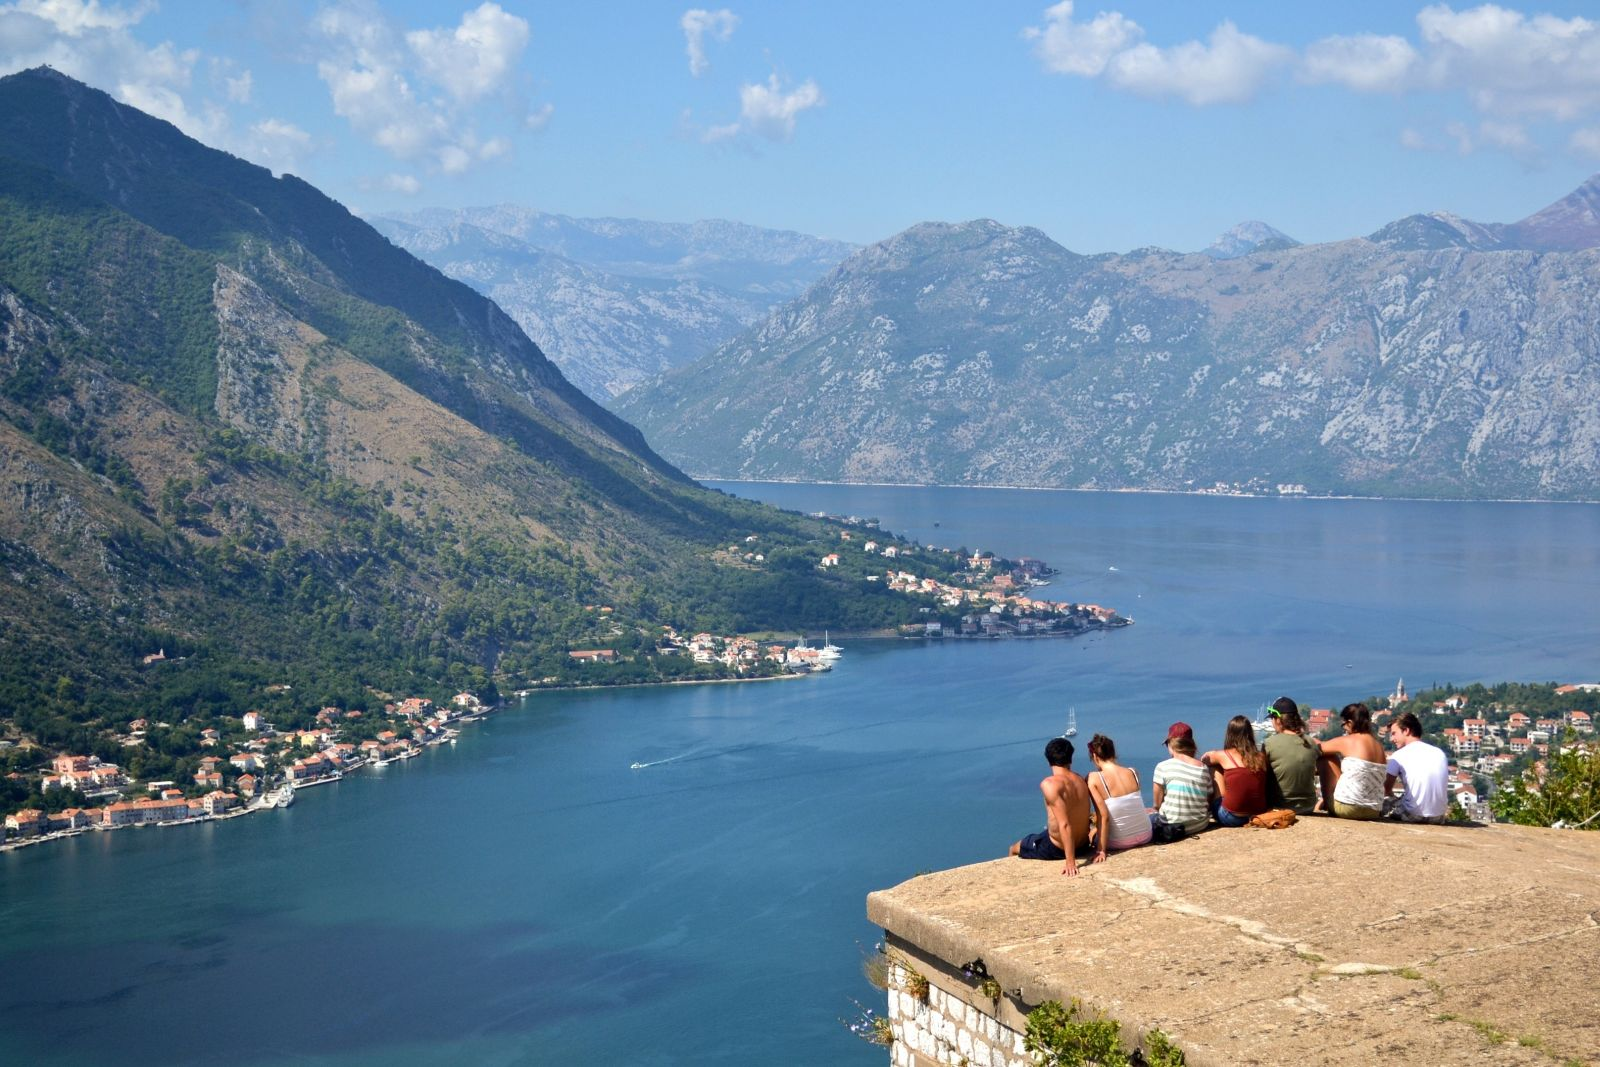 -images-excursions-pearls-of-montenegro--montenegro-day-tour-from-dubrovnik05.jpg